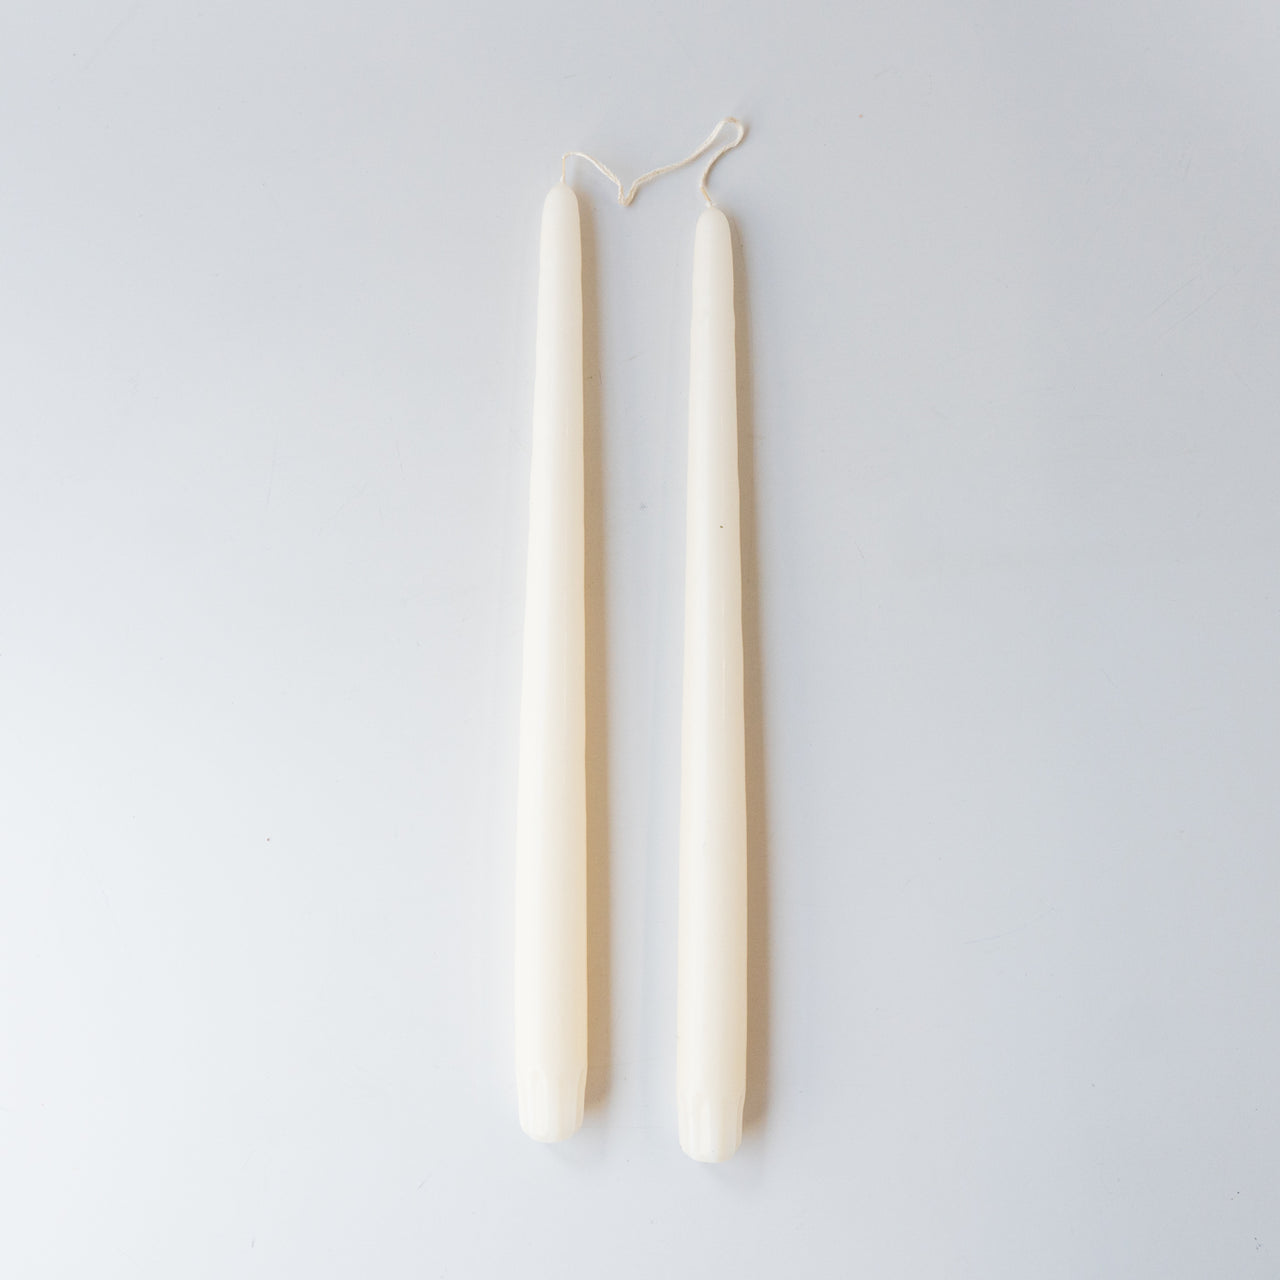 Pair of Taper Candles - White